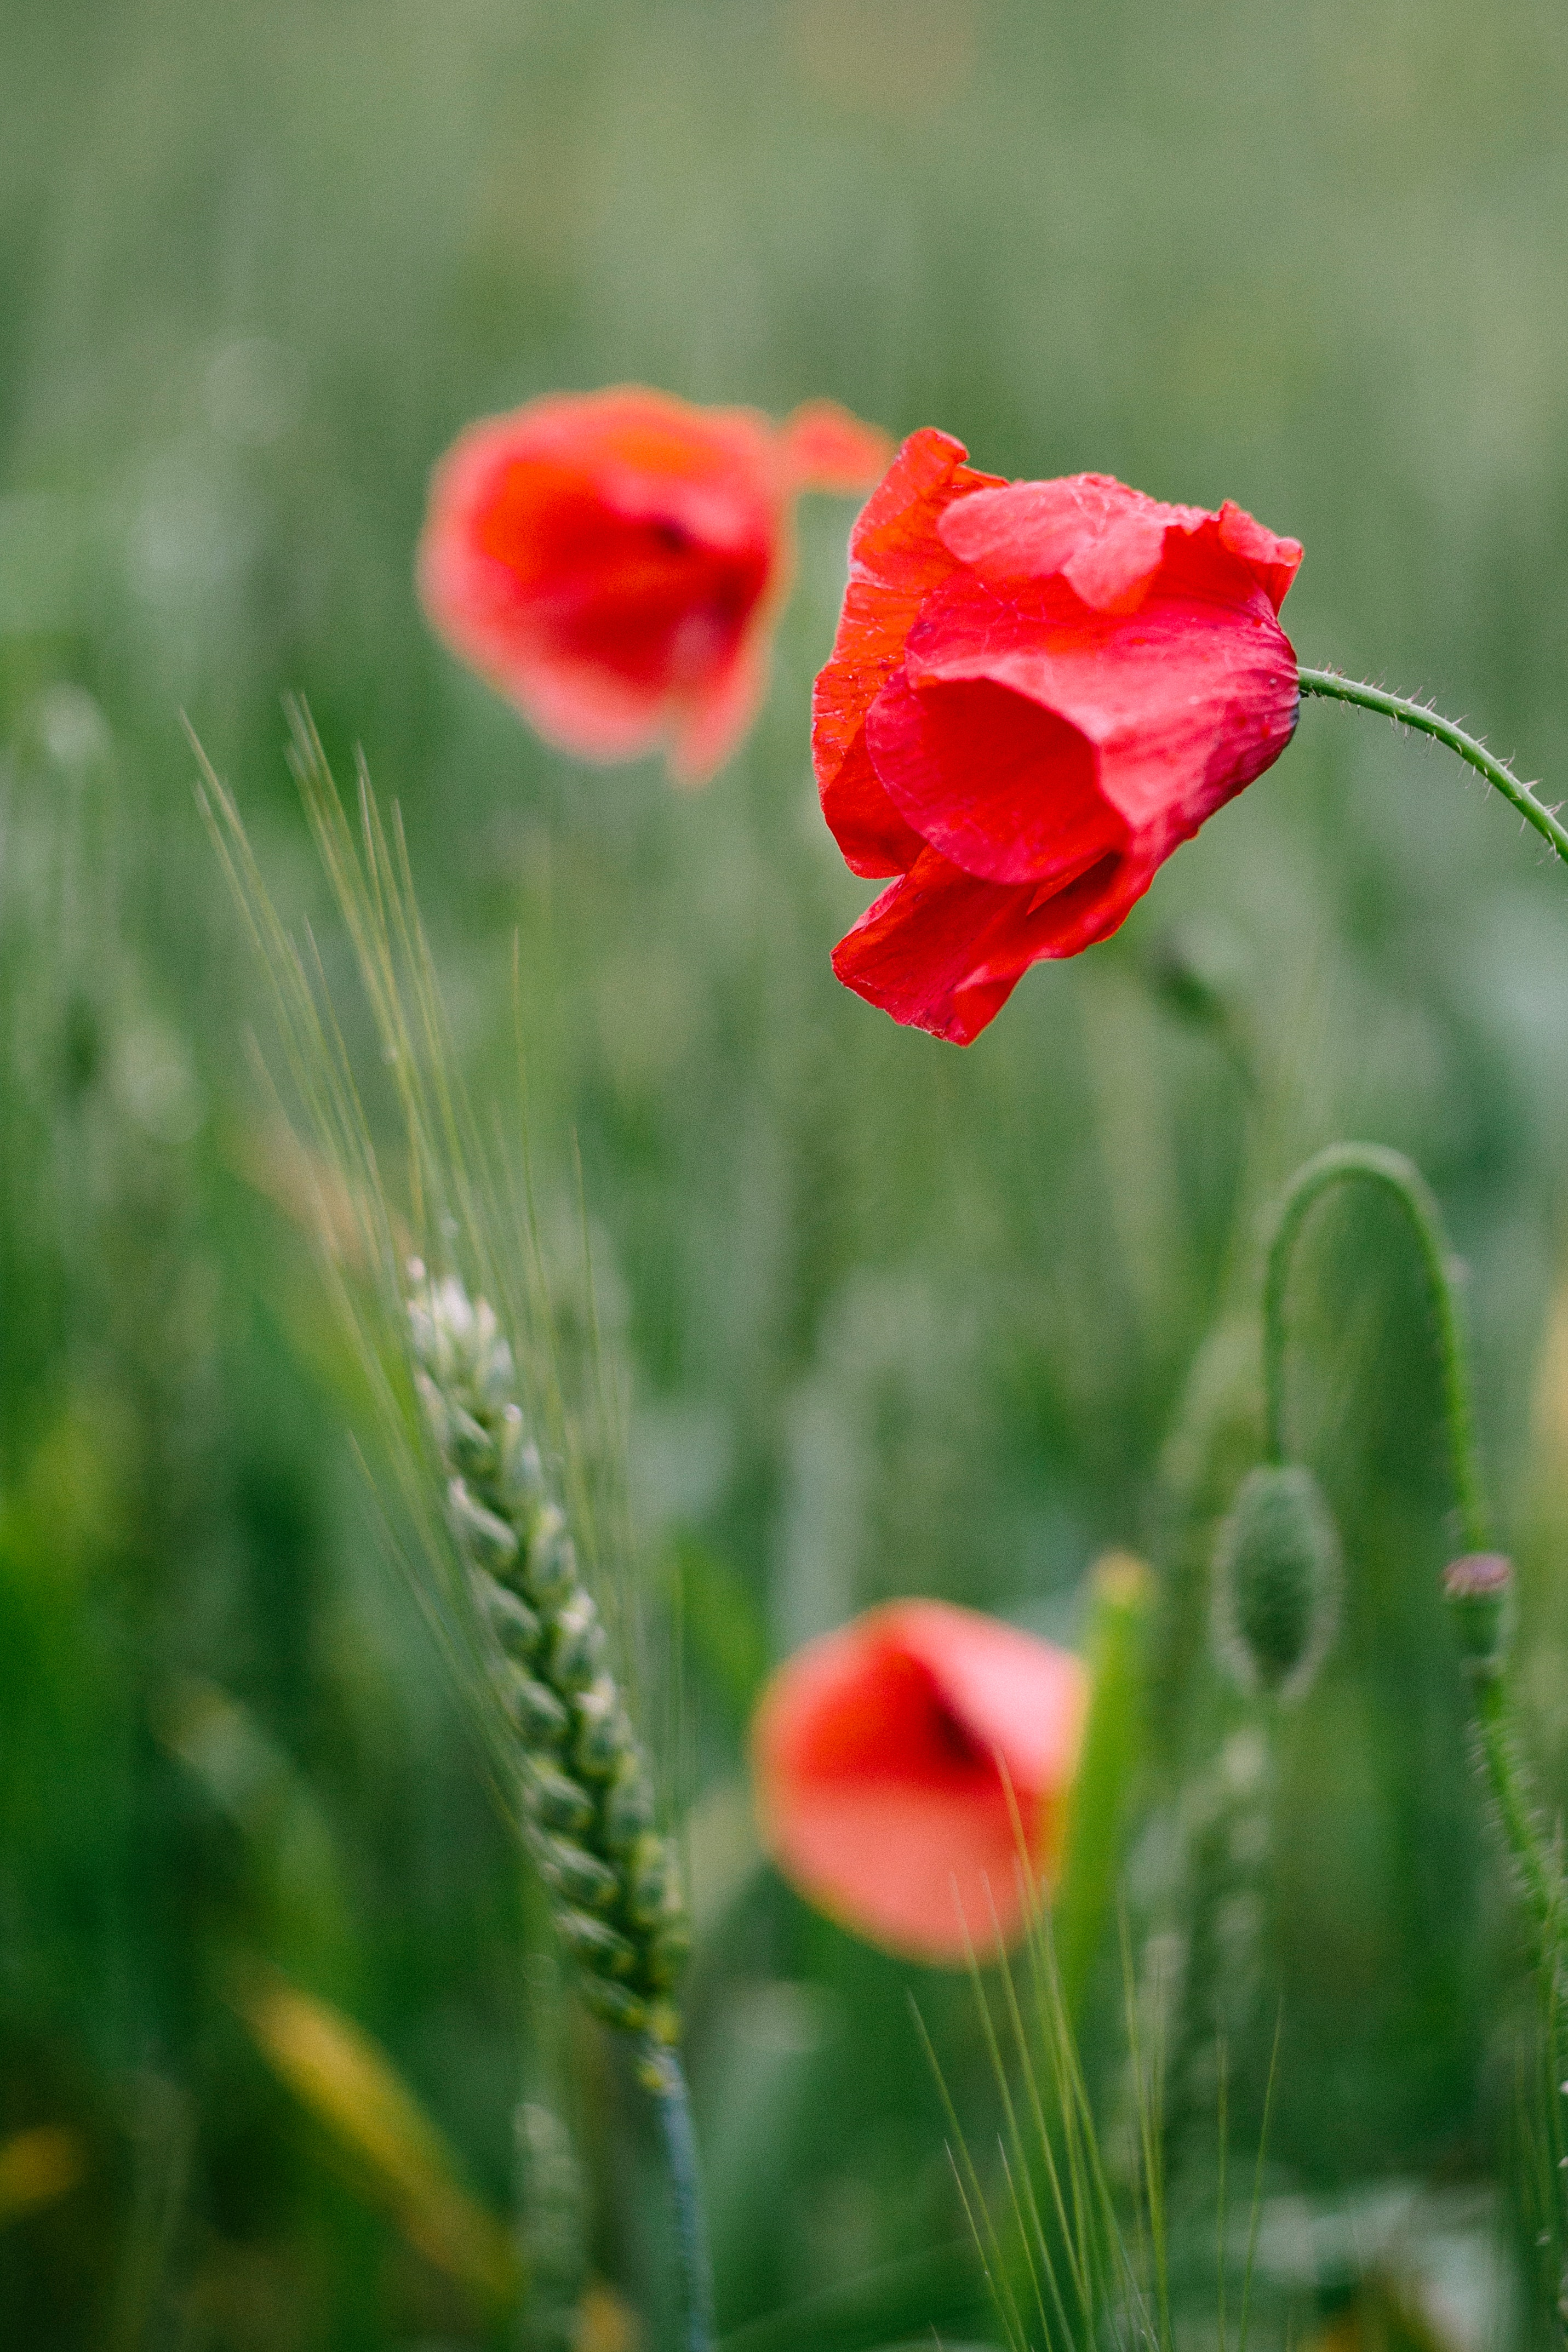 Free stock photo of flowers nature poppy flower free download mightylinksfo